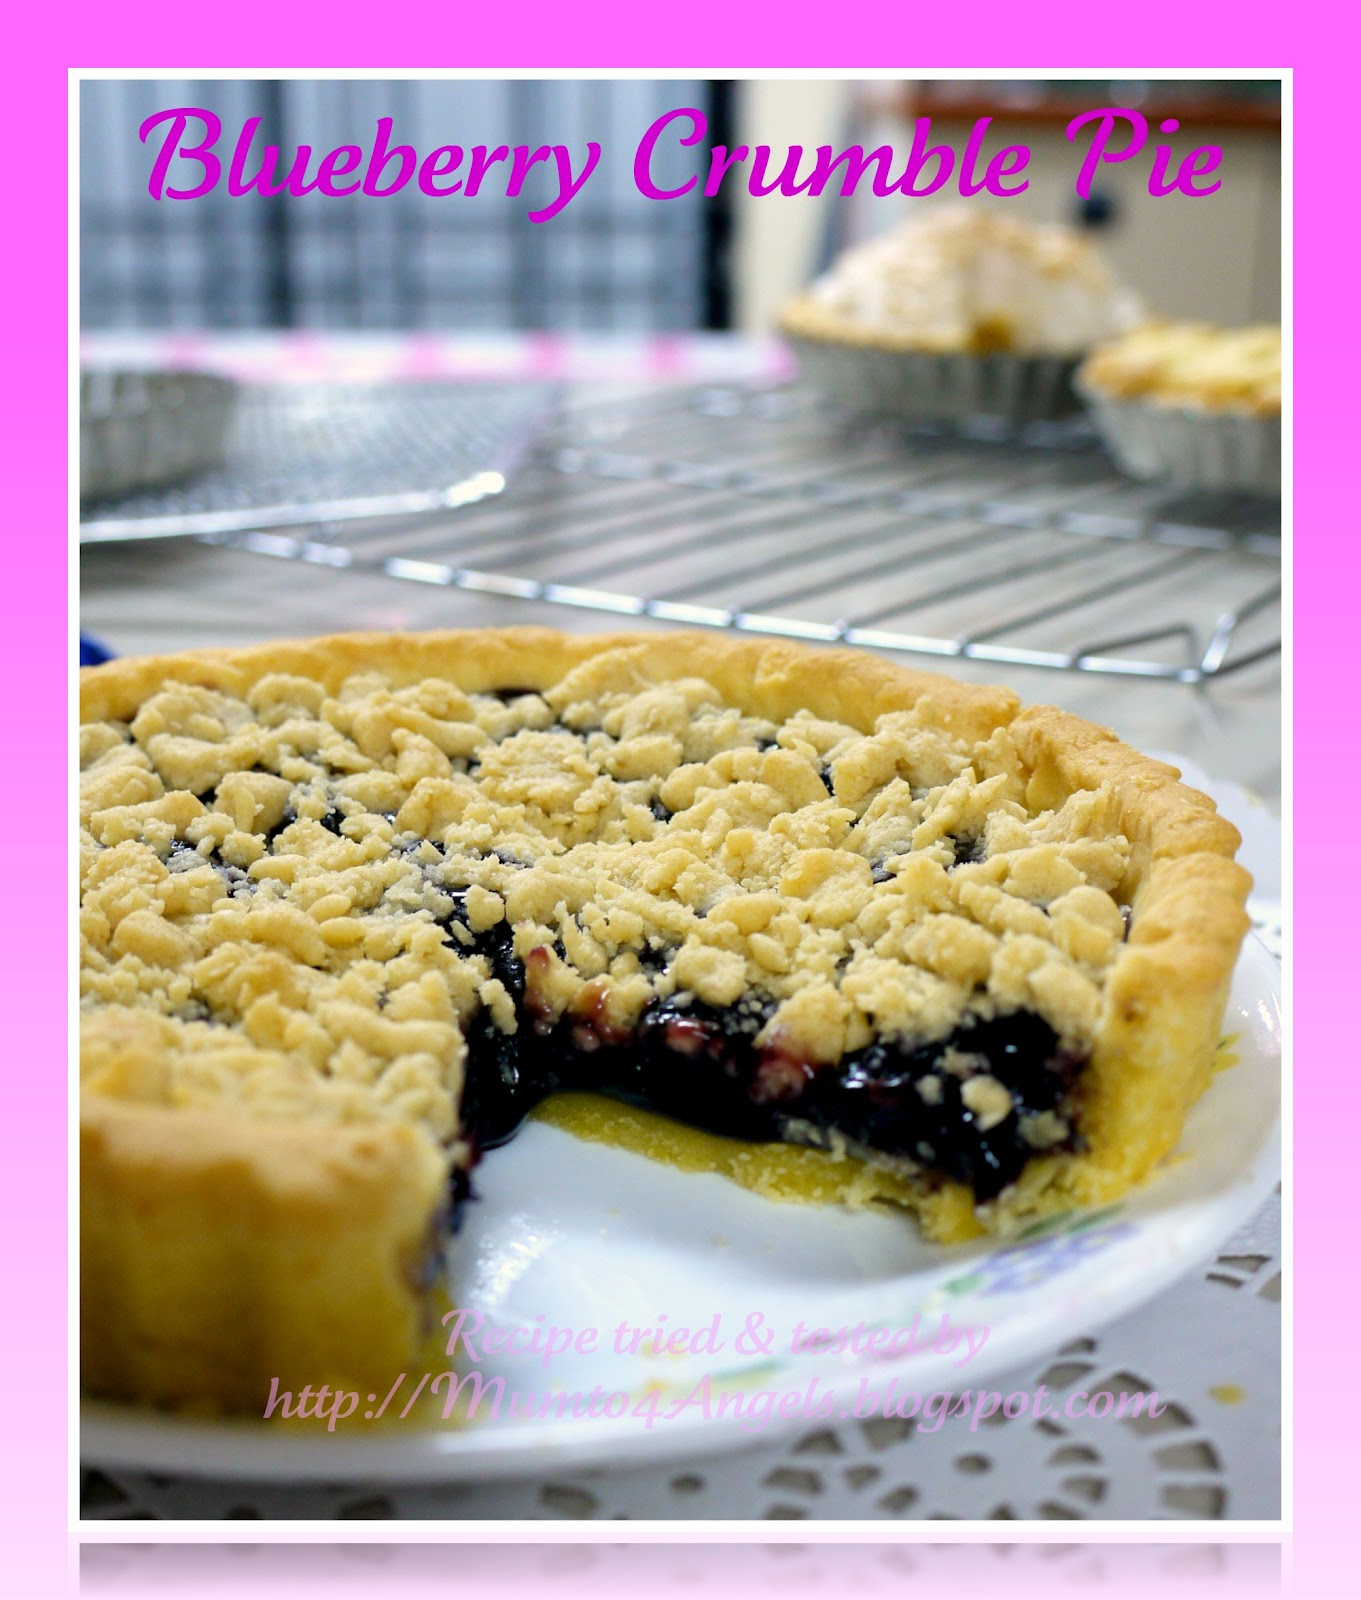 A Mum to 4 Angels: Blueberry Crumble Pie